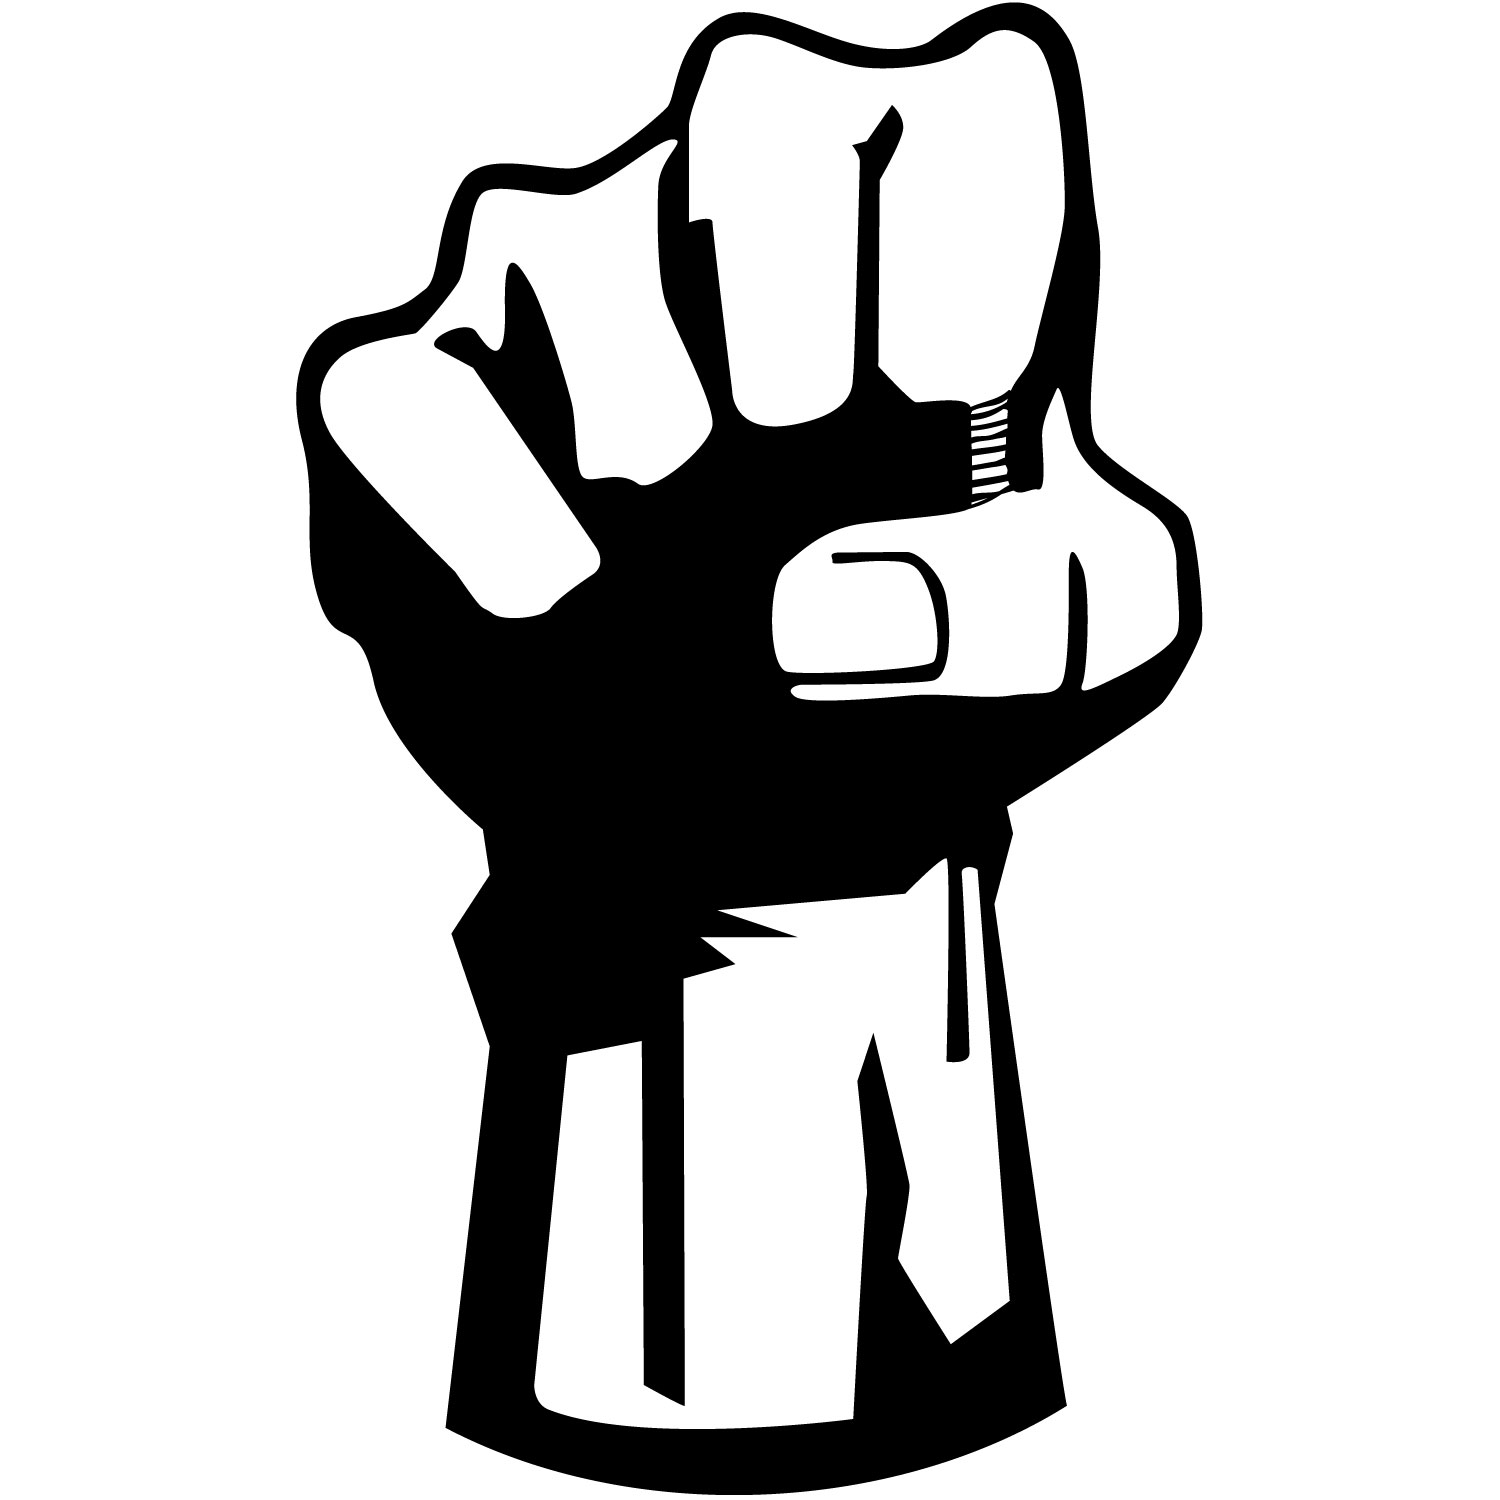 Fist clipart #14, Download drawings